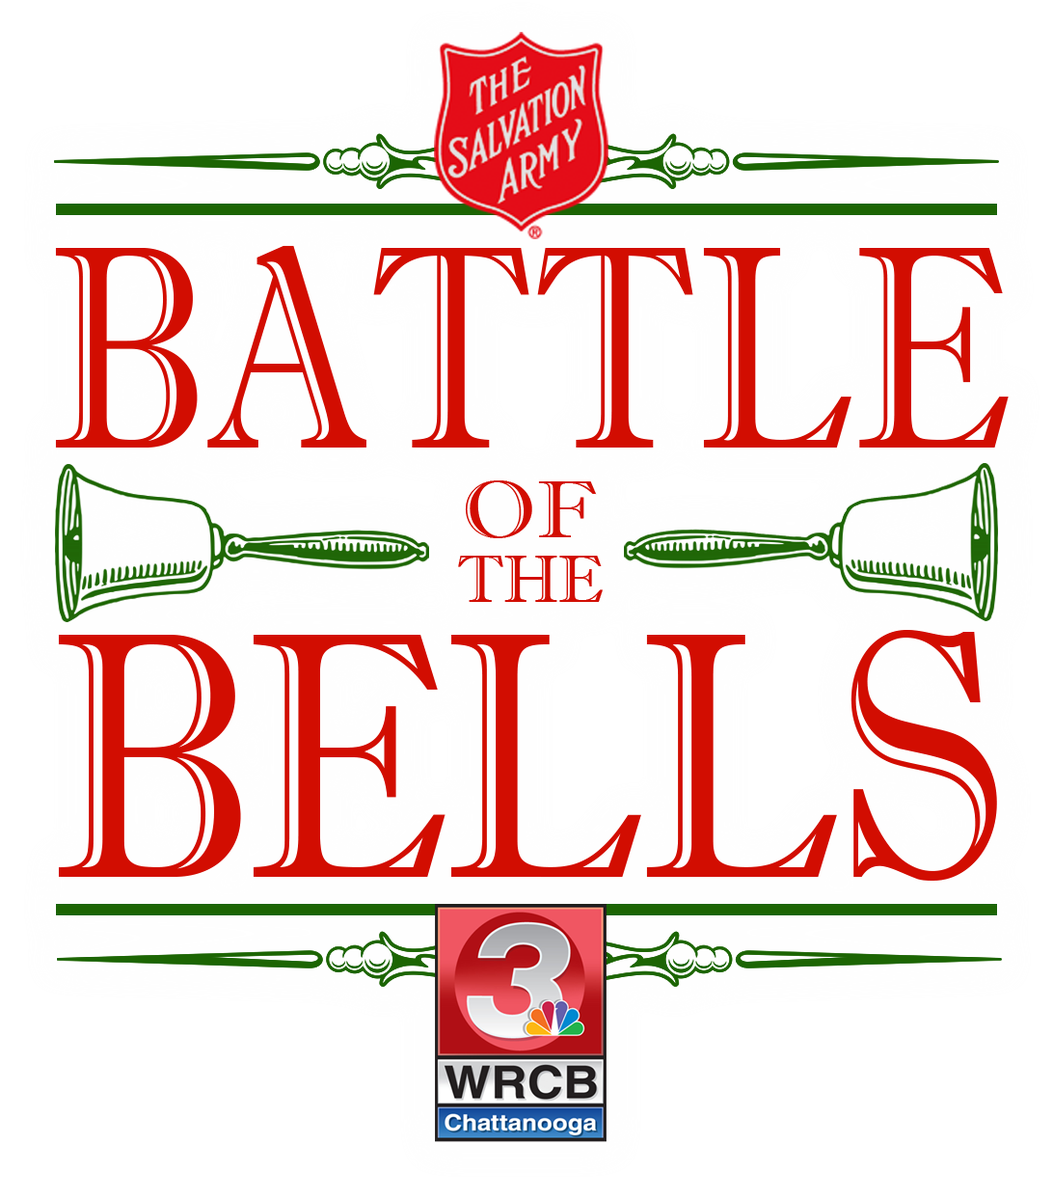 Join us at Hamilton Place Mall today as we collect donations for the Salvation Army's 'Battle of the Bells'. https://t.co/iMmmYMSkZL